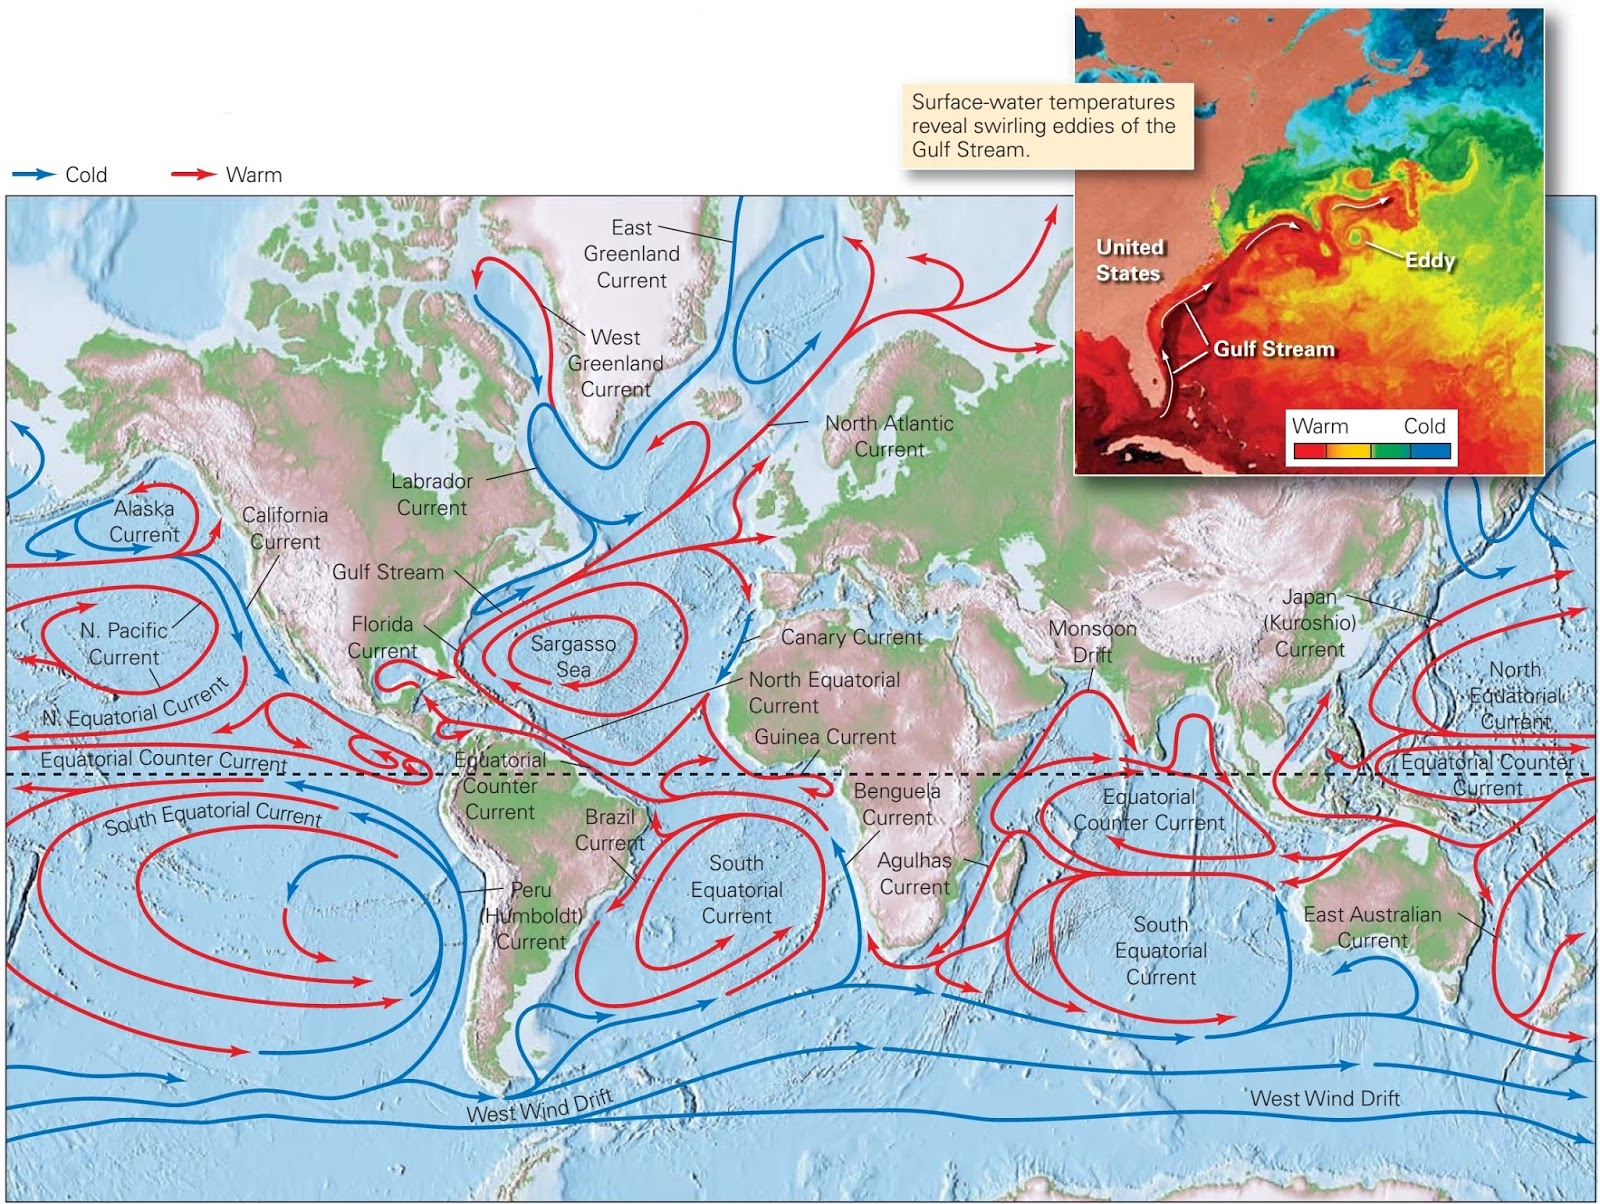 ocean currents The gulf stream is one of the strong ocean currents that carries warm water from the tropics to the higher latitudes in contrast to the nontechnological methods used to produce early maps of the gulf stream, today's remote sensing technology on satellites allows scientists to delineate the current's features and follow changes in its position.